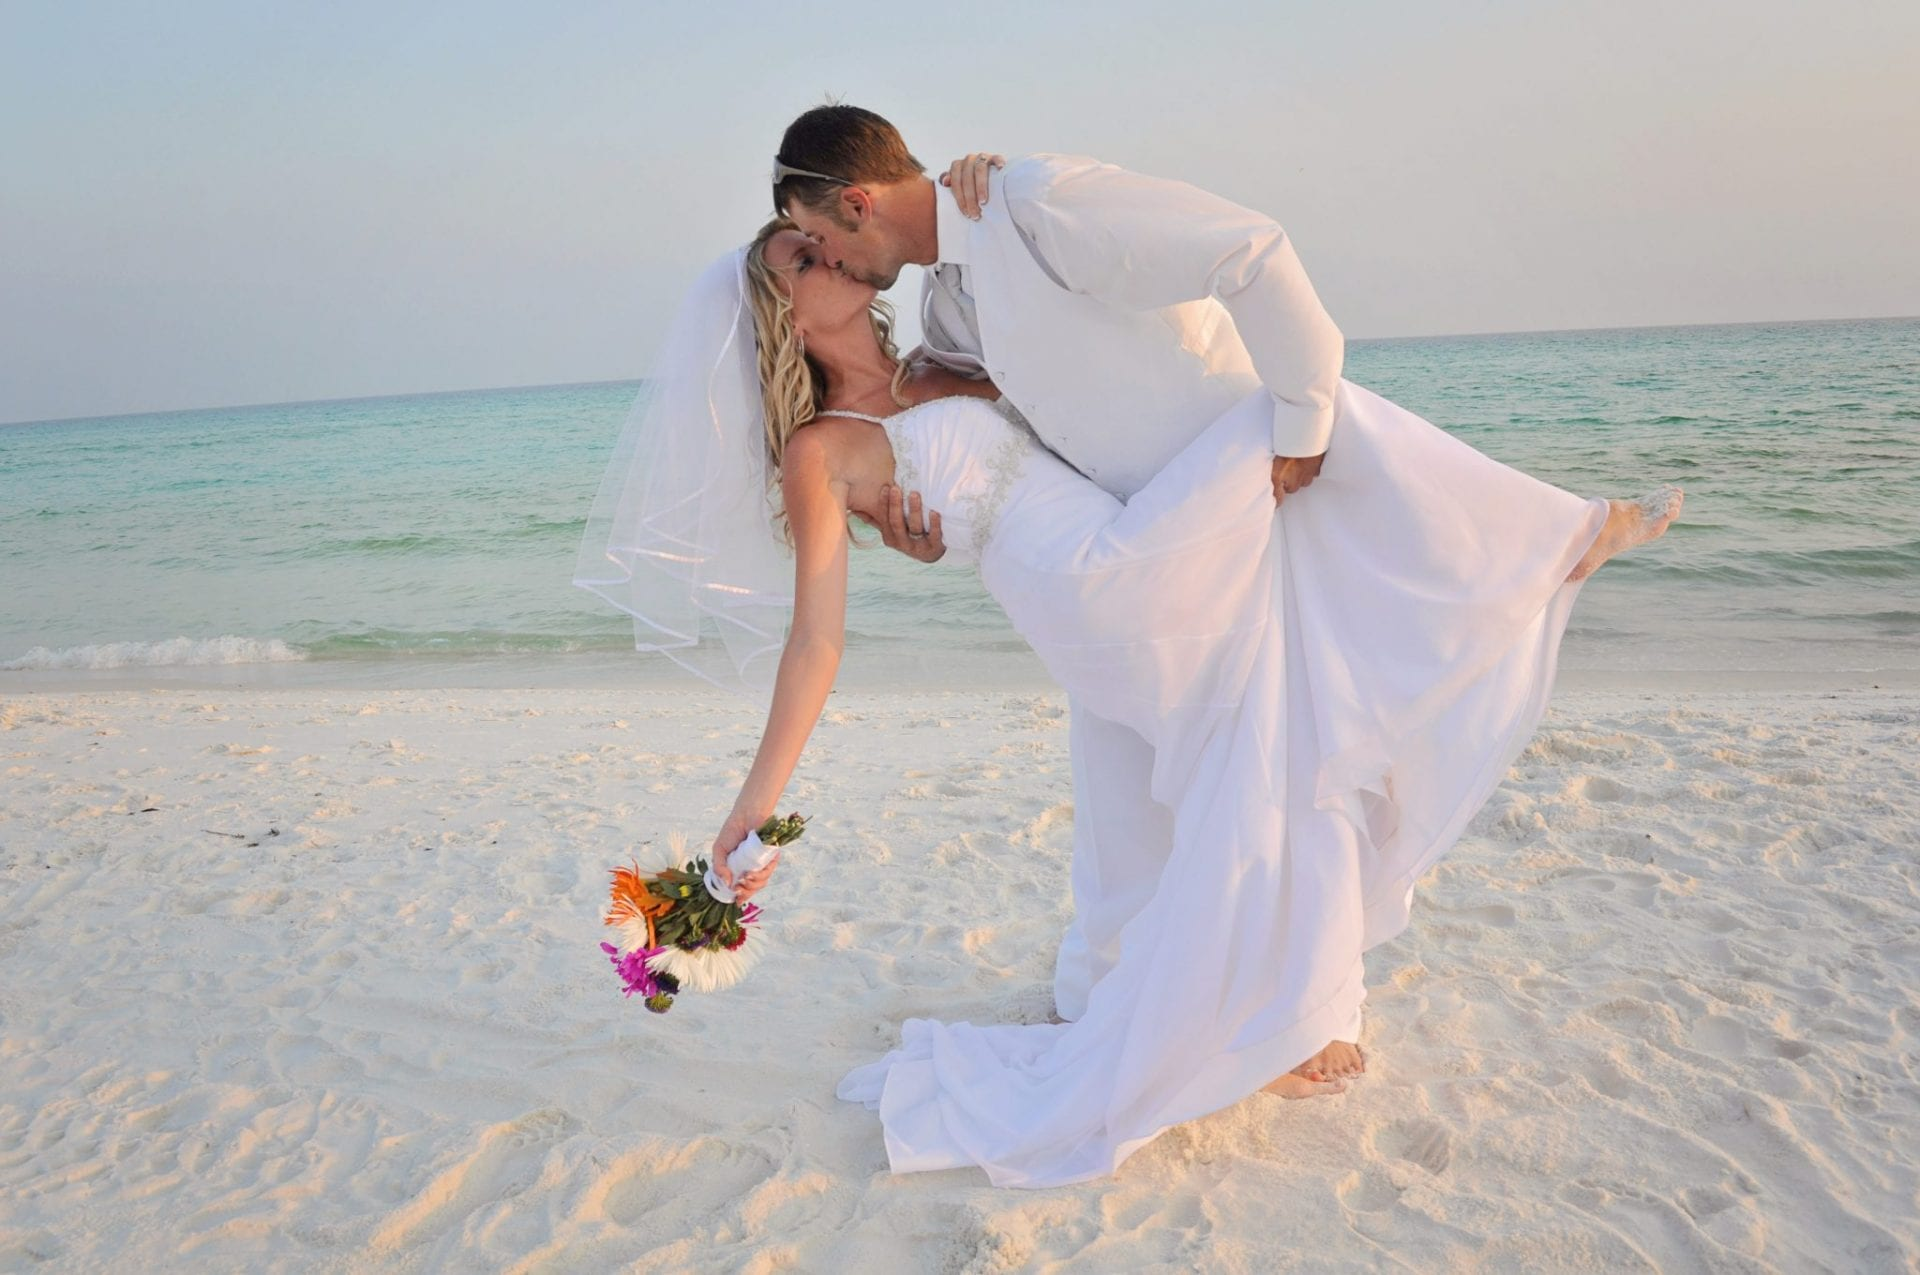 Wedding couple kissing after beach wedding in Navarre, FL